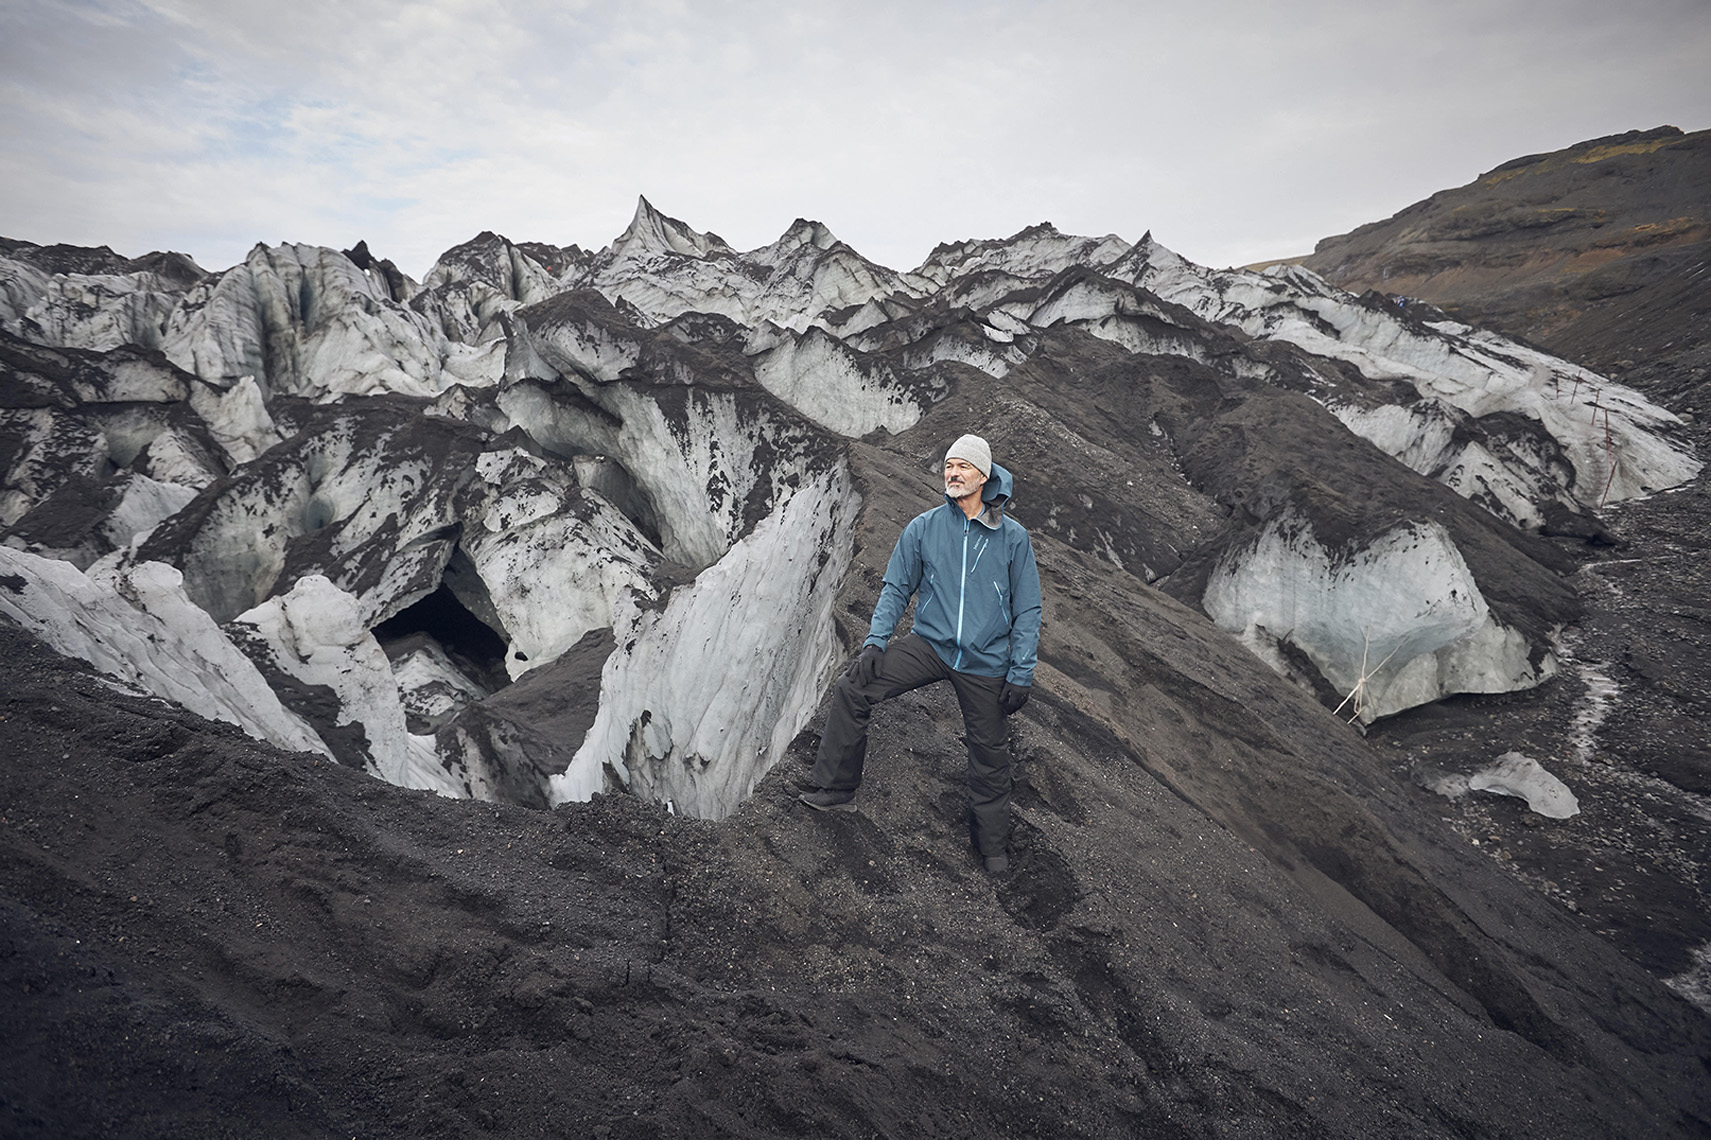 20191021-53_ICELAND-ANDRES-DREAM-GLACIER_5993